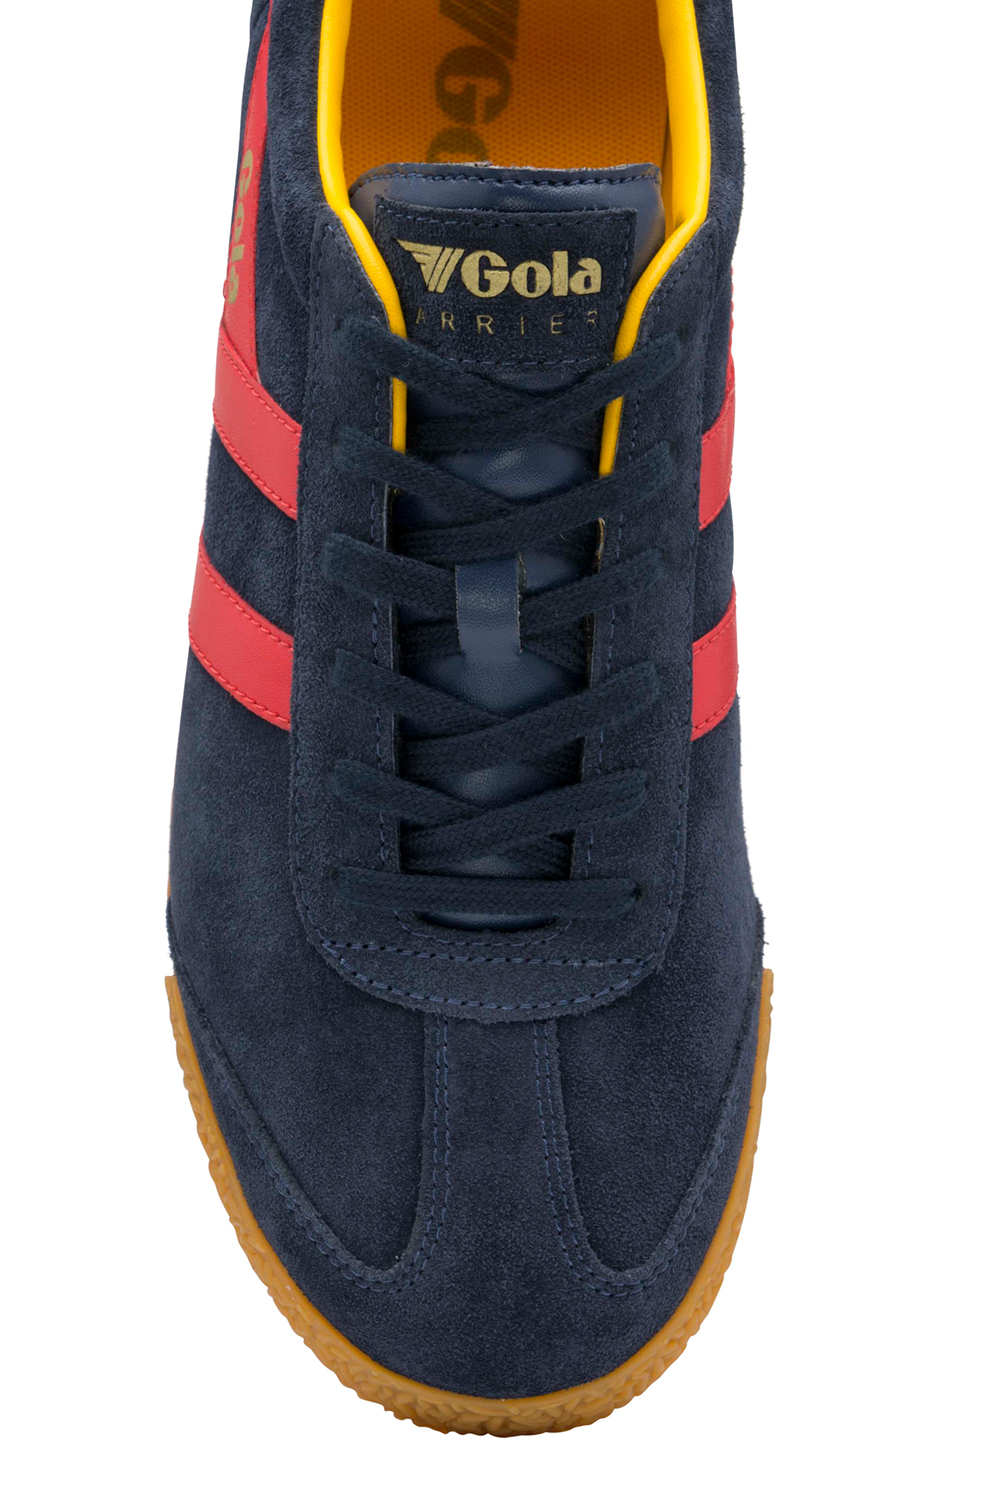 Gola-Harrier-Suede-Classic-Vintage-Lace-Up-Sneakers-Mens-Trainers-Low-Top-Shoes thumbnail 21